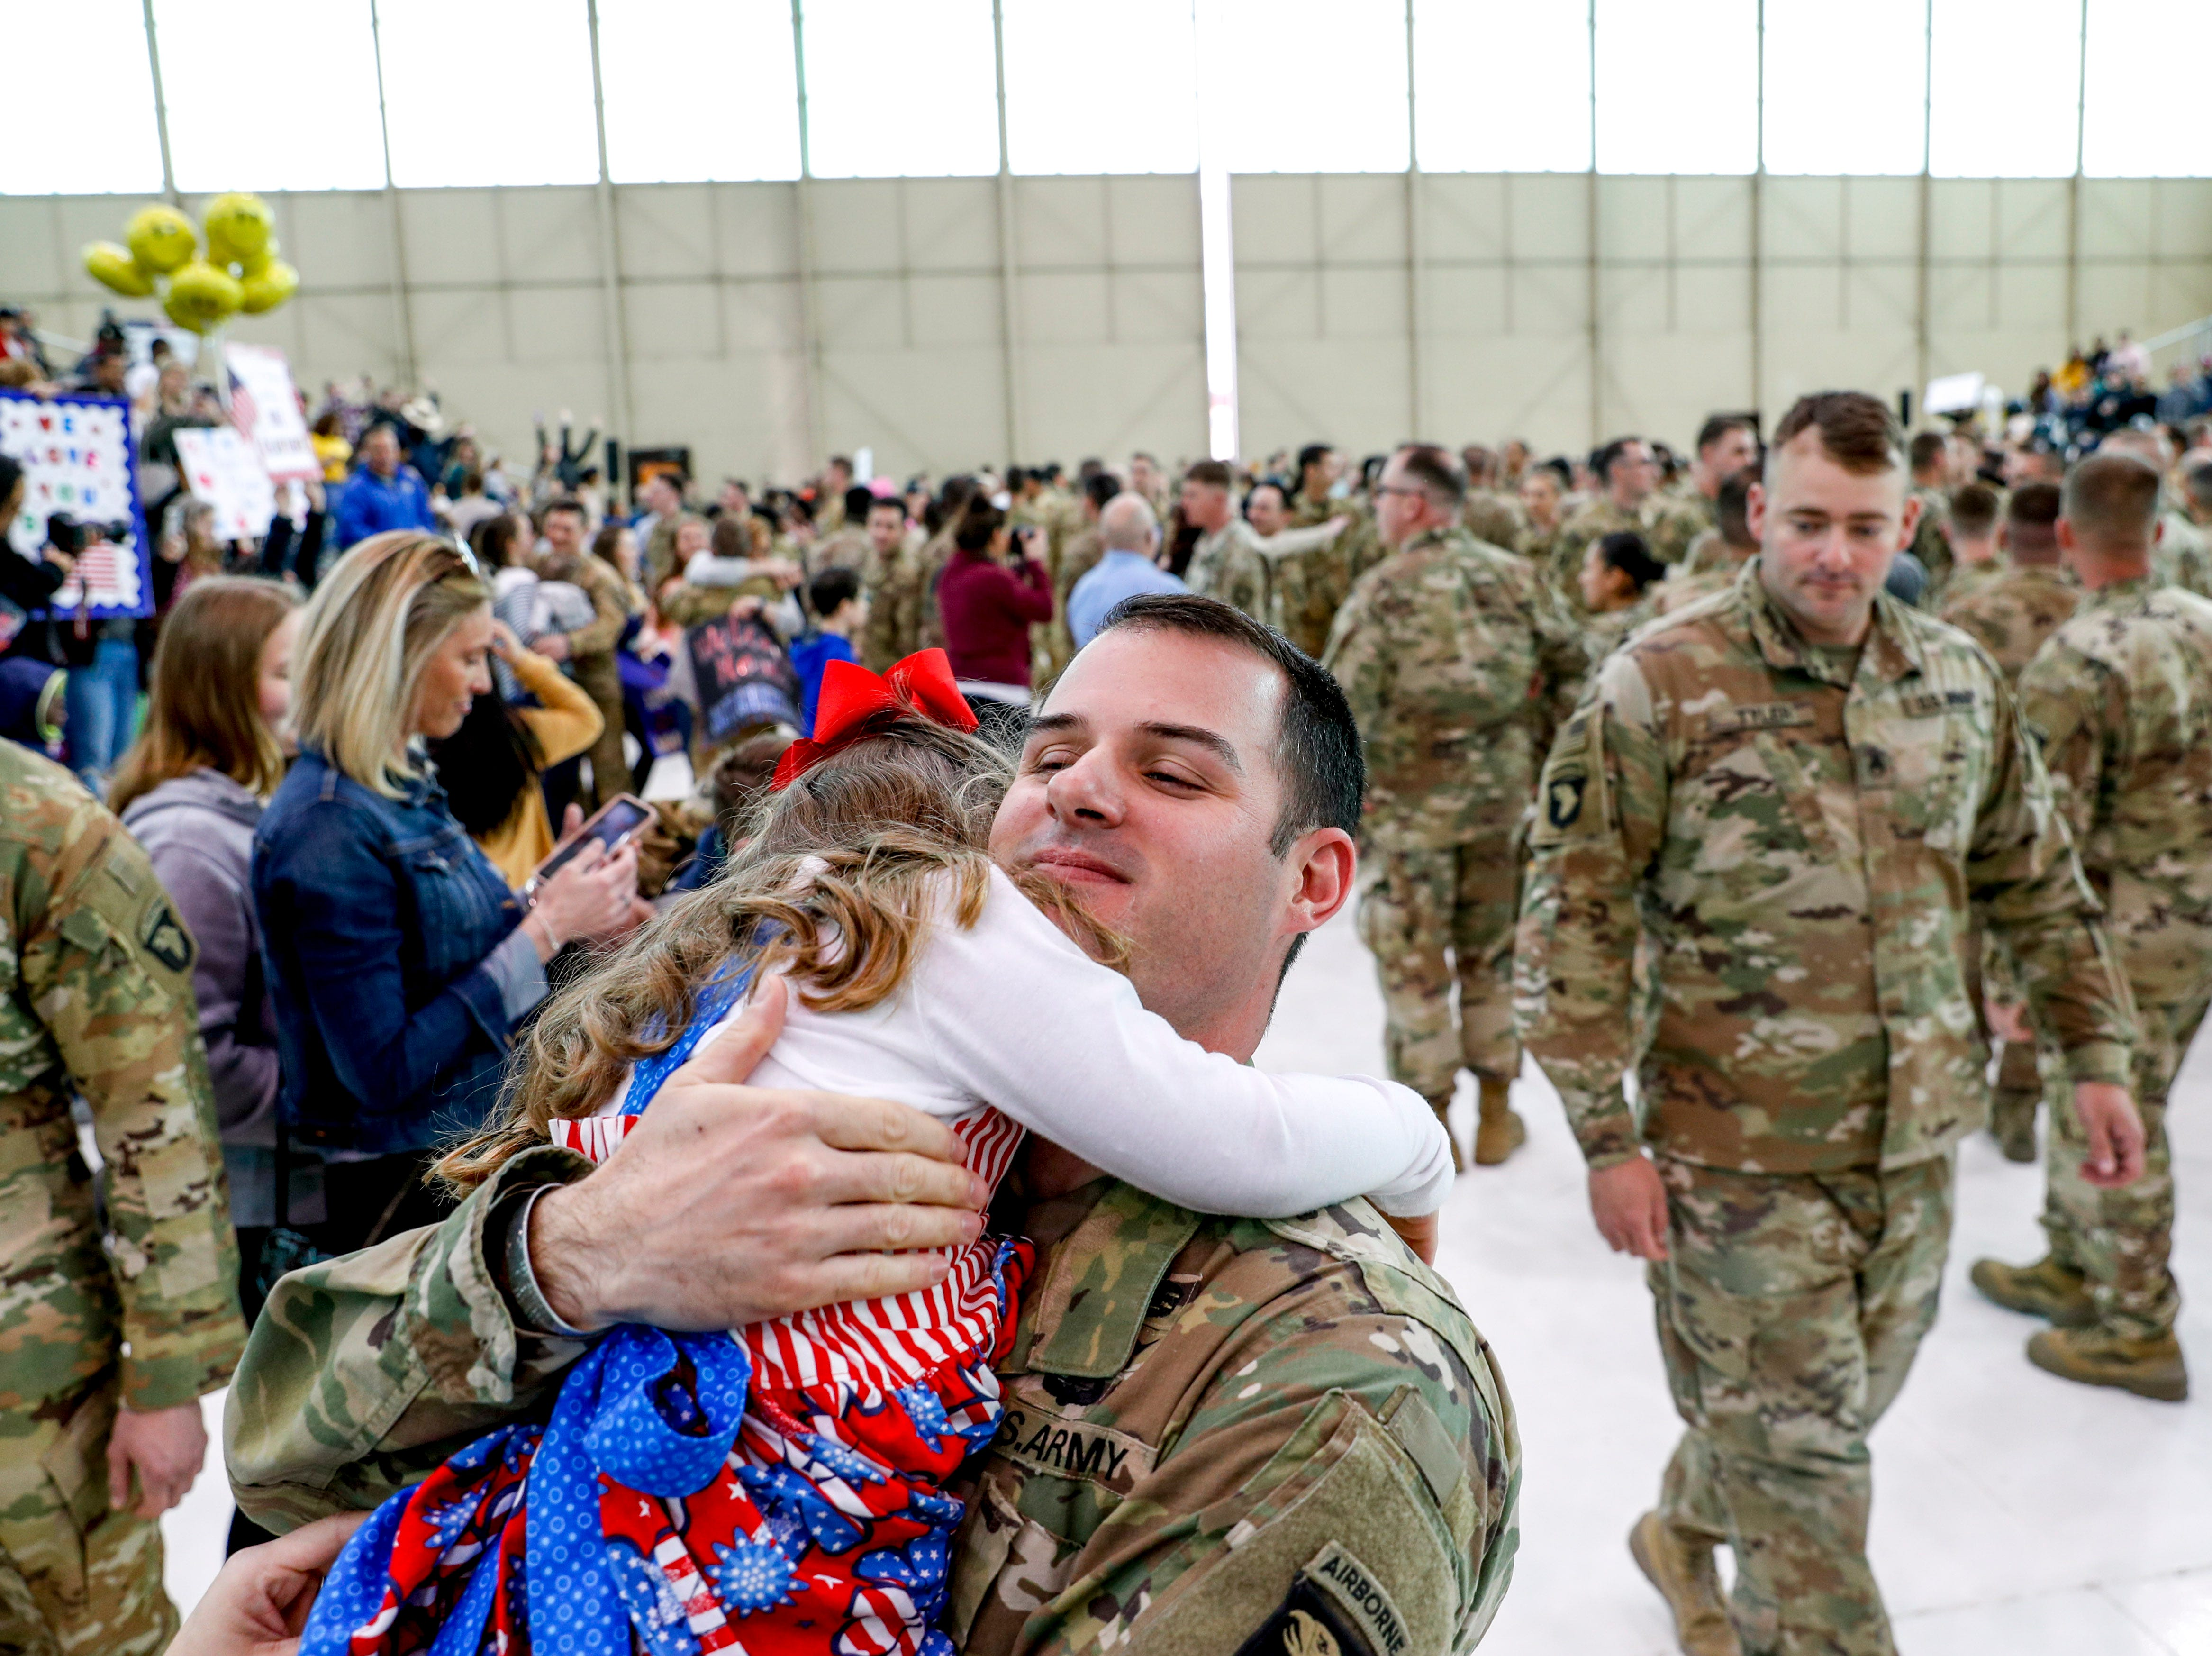 Maj. Greg Sterley embraces his daughter Allison Sterley, 4, seeing her for the first time during the return of soldiers from the 101st Combat Aviation Brigade of 101st Airborne Division (Air Assault) at Campbell Army Air Field in Fort Campbell, KY., on Sunday, March 10, 2019.